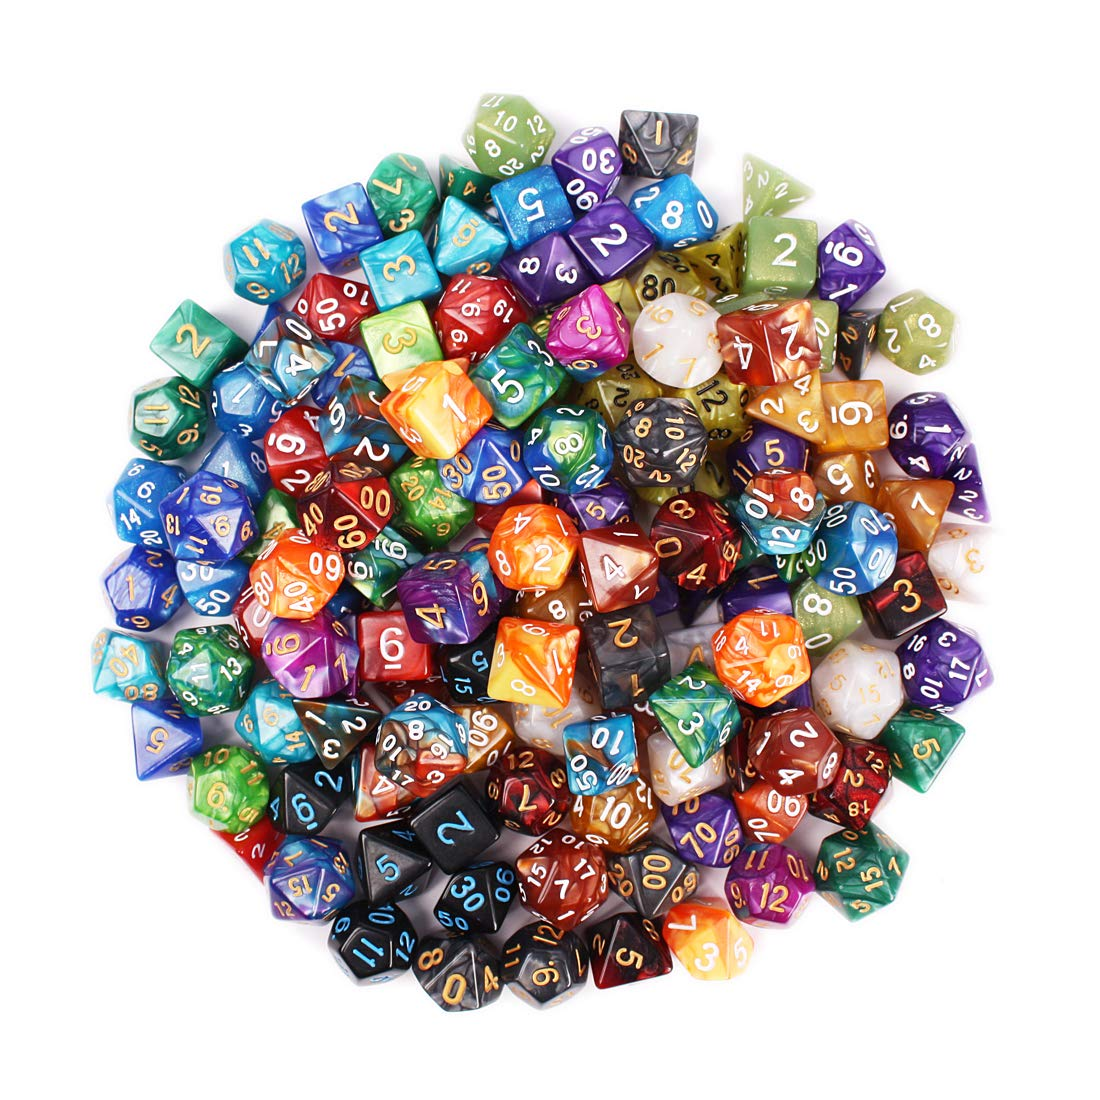 QMAY DND Dice Set, 140PCS Polyhedral Game Dice, 20 Color Double-Colors DND Dice Role Playing Dice for Dungeon and Dragons DND RPG MTG Table Games Dice D4 D8 D10 D12 D20 by QMAY (Image #5)